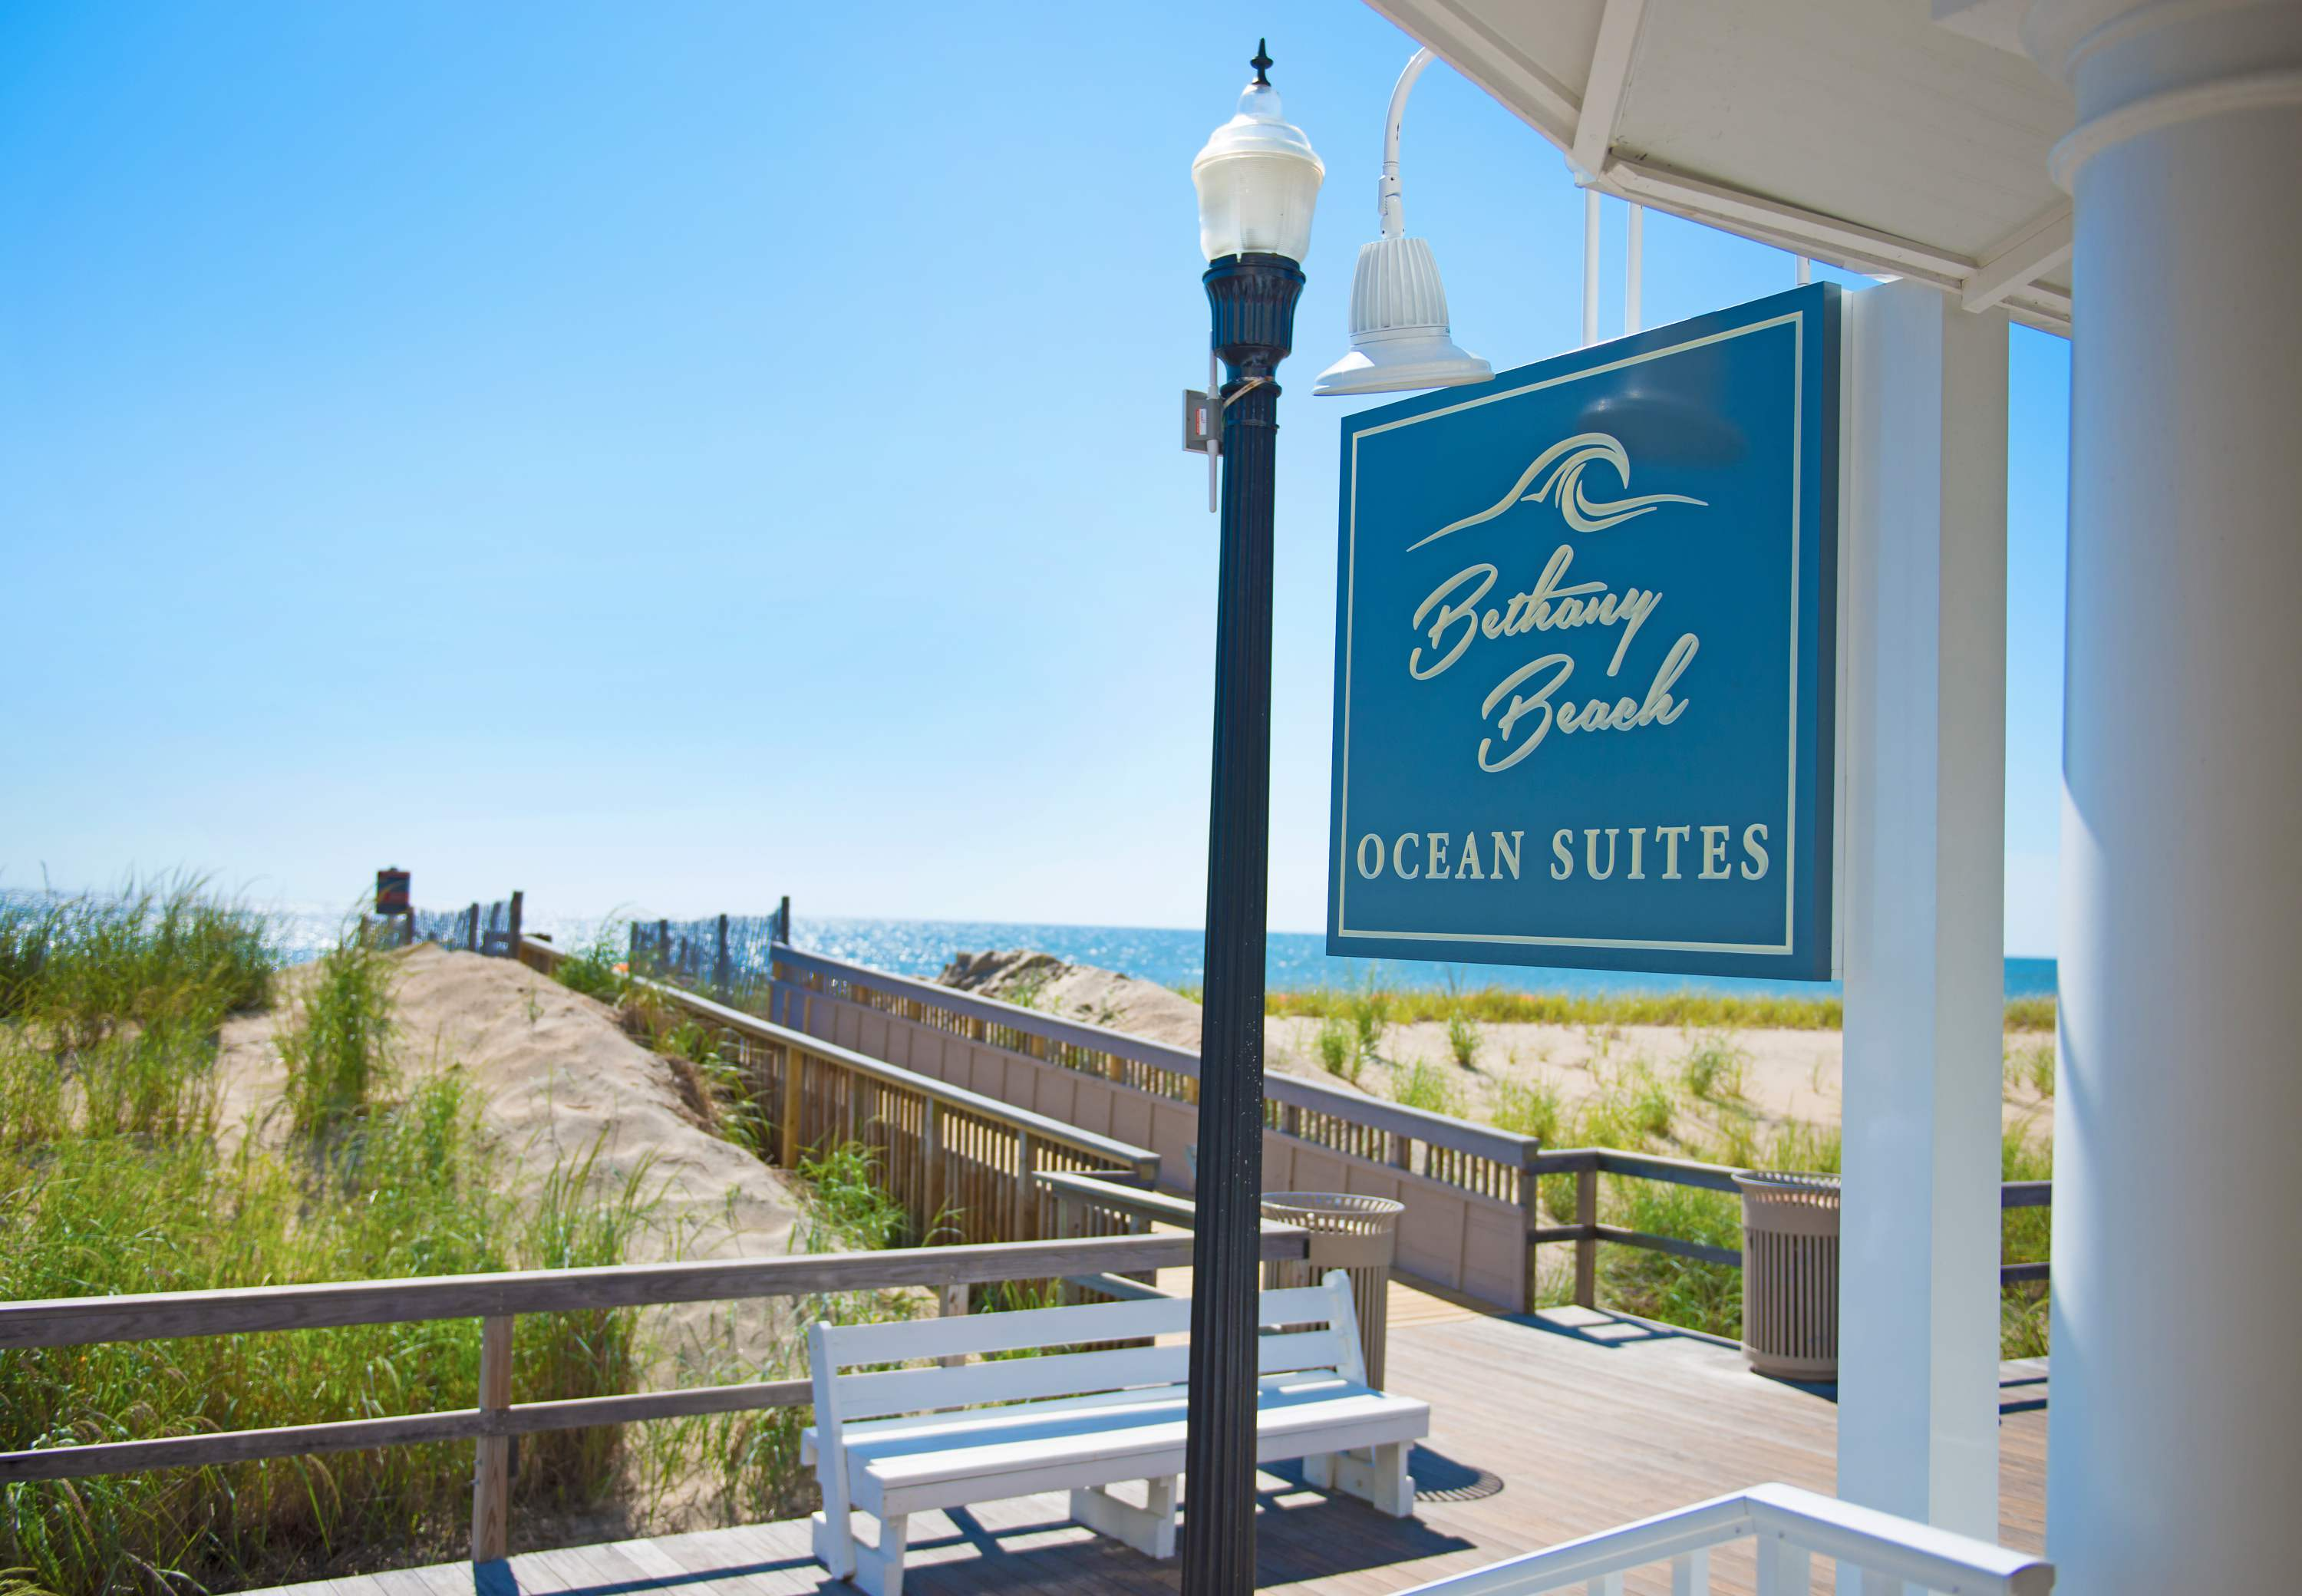 Bethany Beach Ocean Suites Residence Inn By Marriott 99 Hollywood Street De Hotels Motels Mapquest